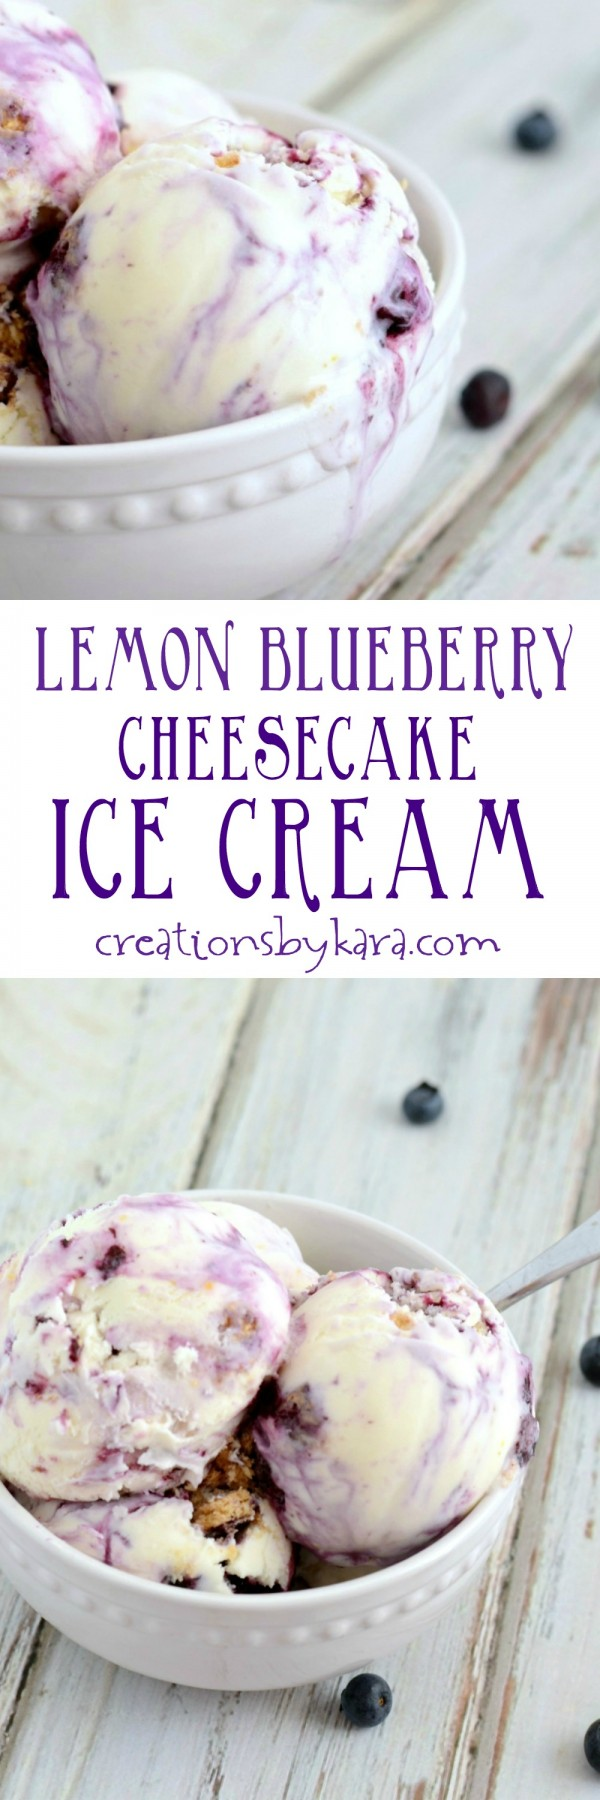 Get the recipe Lemon Blueberry Cheesecake Ice Cream @recipes_to_go